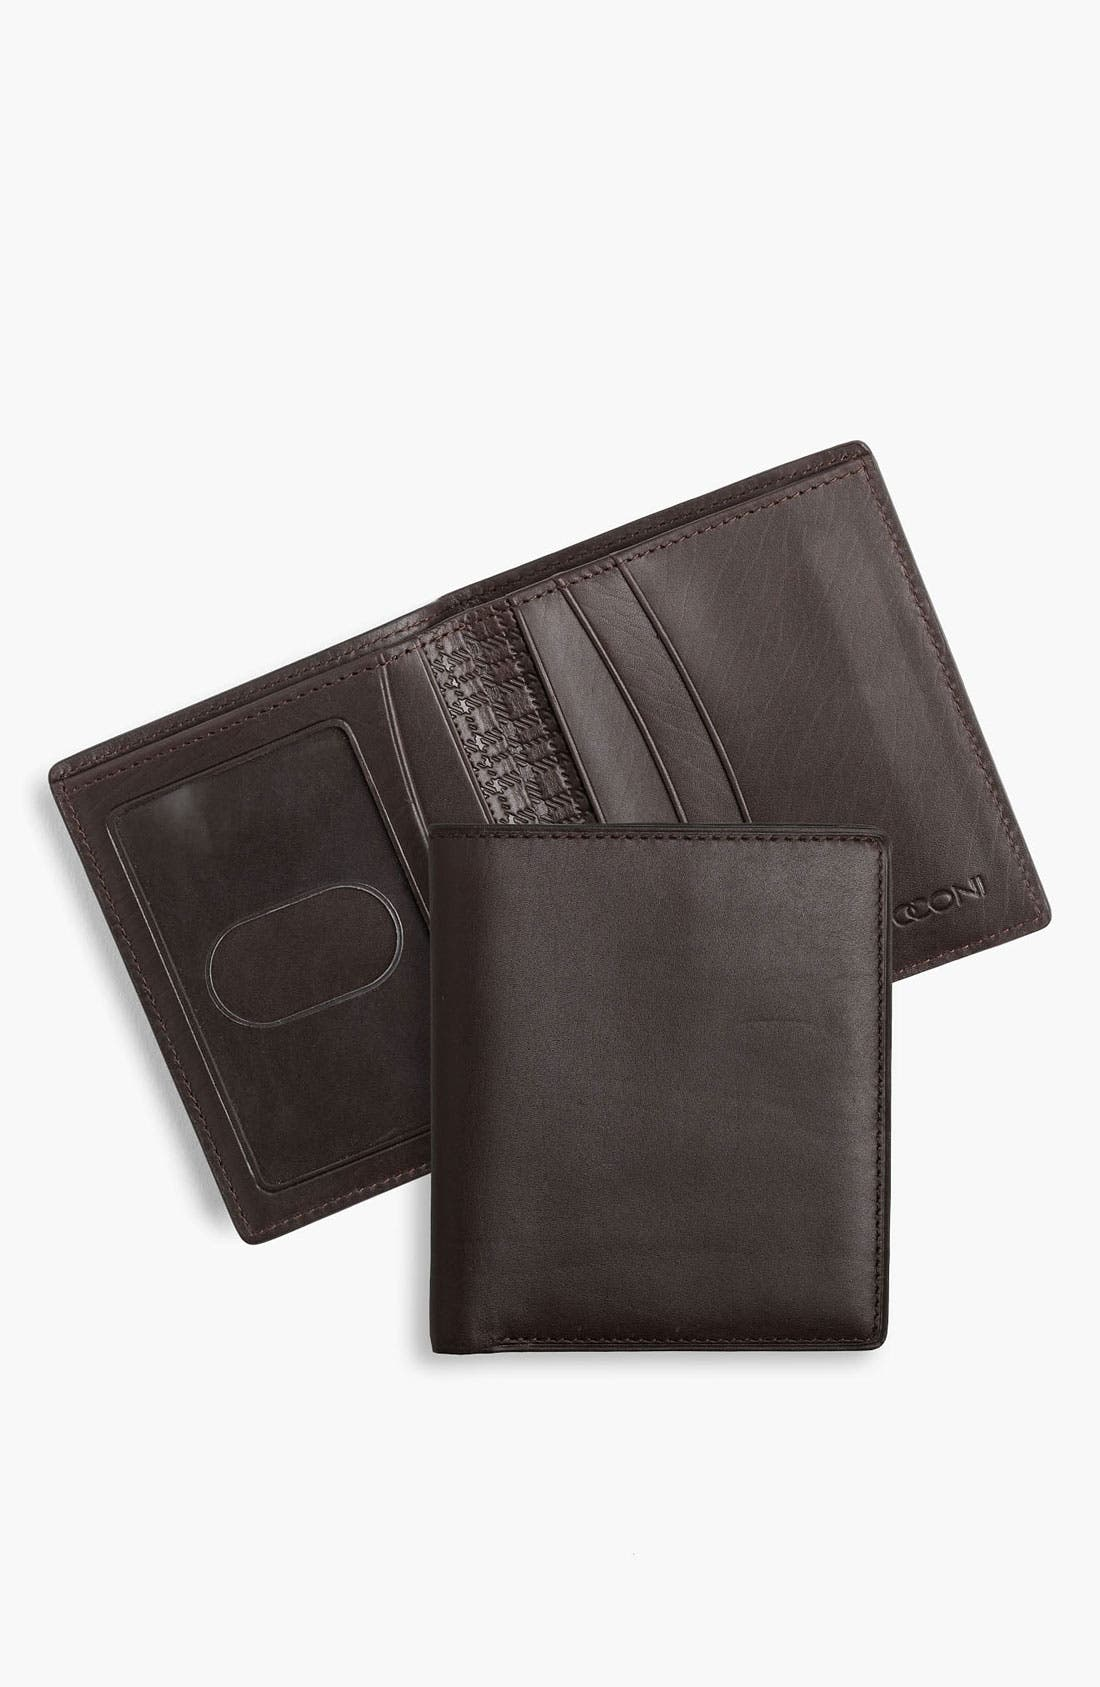 Alternate Image 1 Selected - Boconi 'Xavier' Compact Wallet